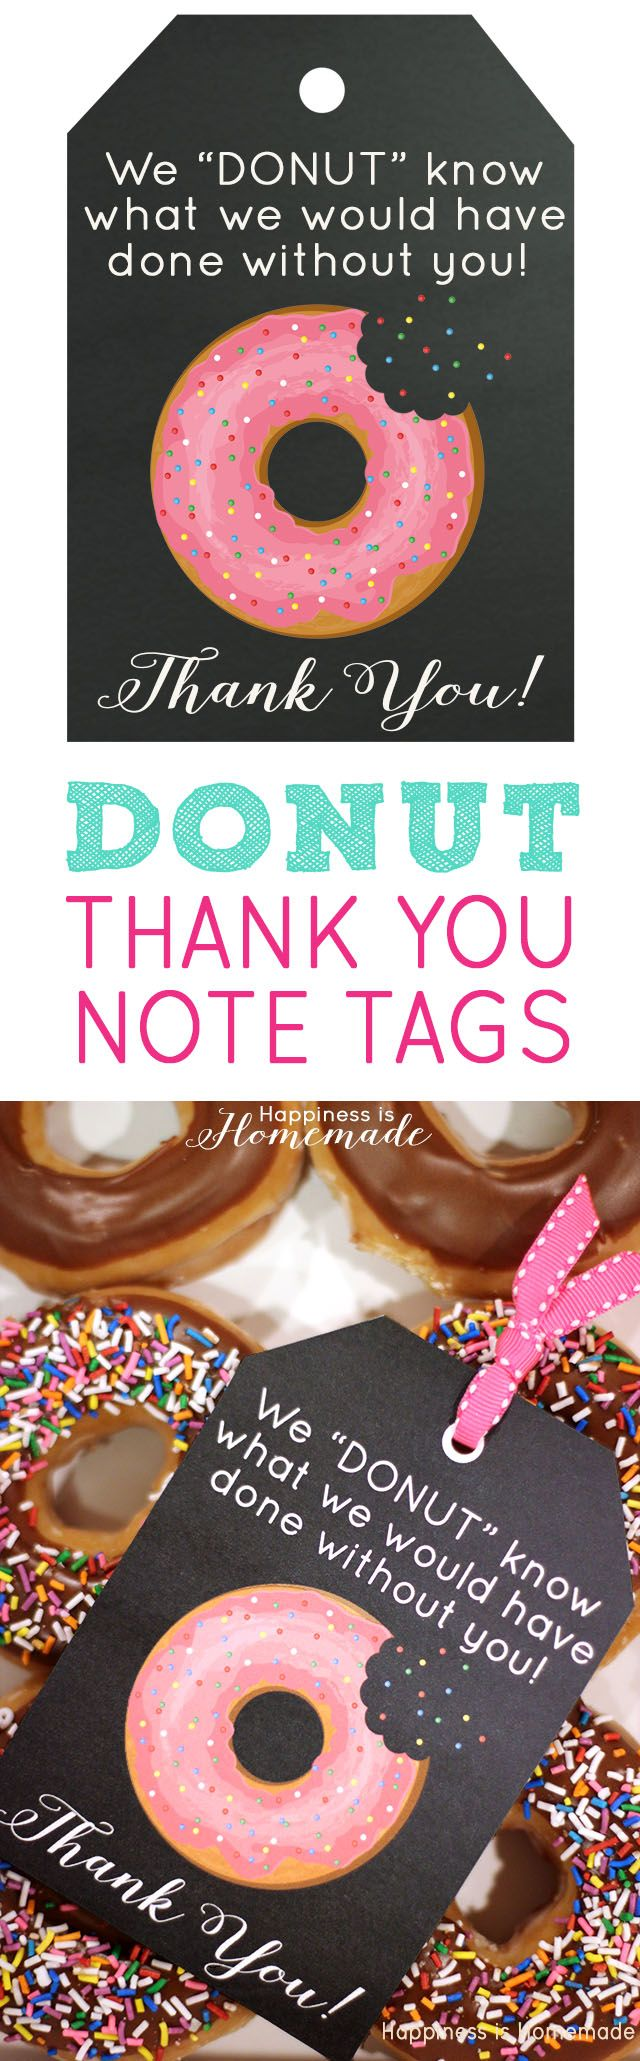 "These free printable donut thank you notes are SUPER cute! Cute gift tag for teacher appreciation! ""We 'DONUT' know what we would have done without you!"""